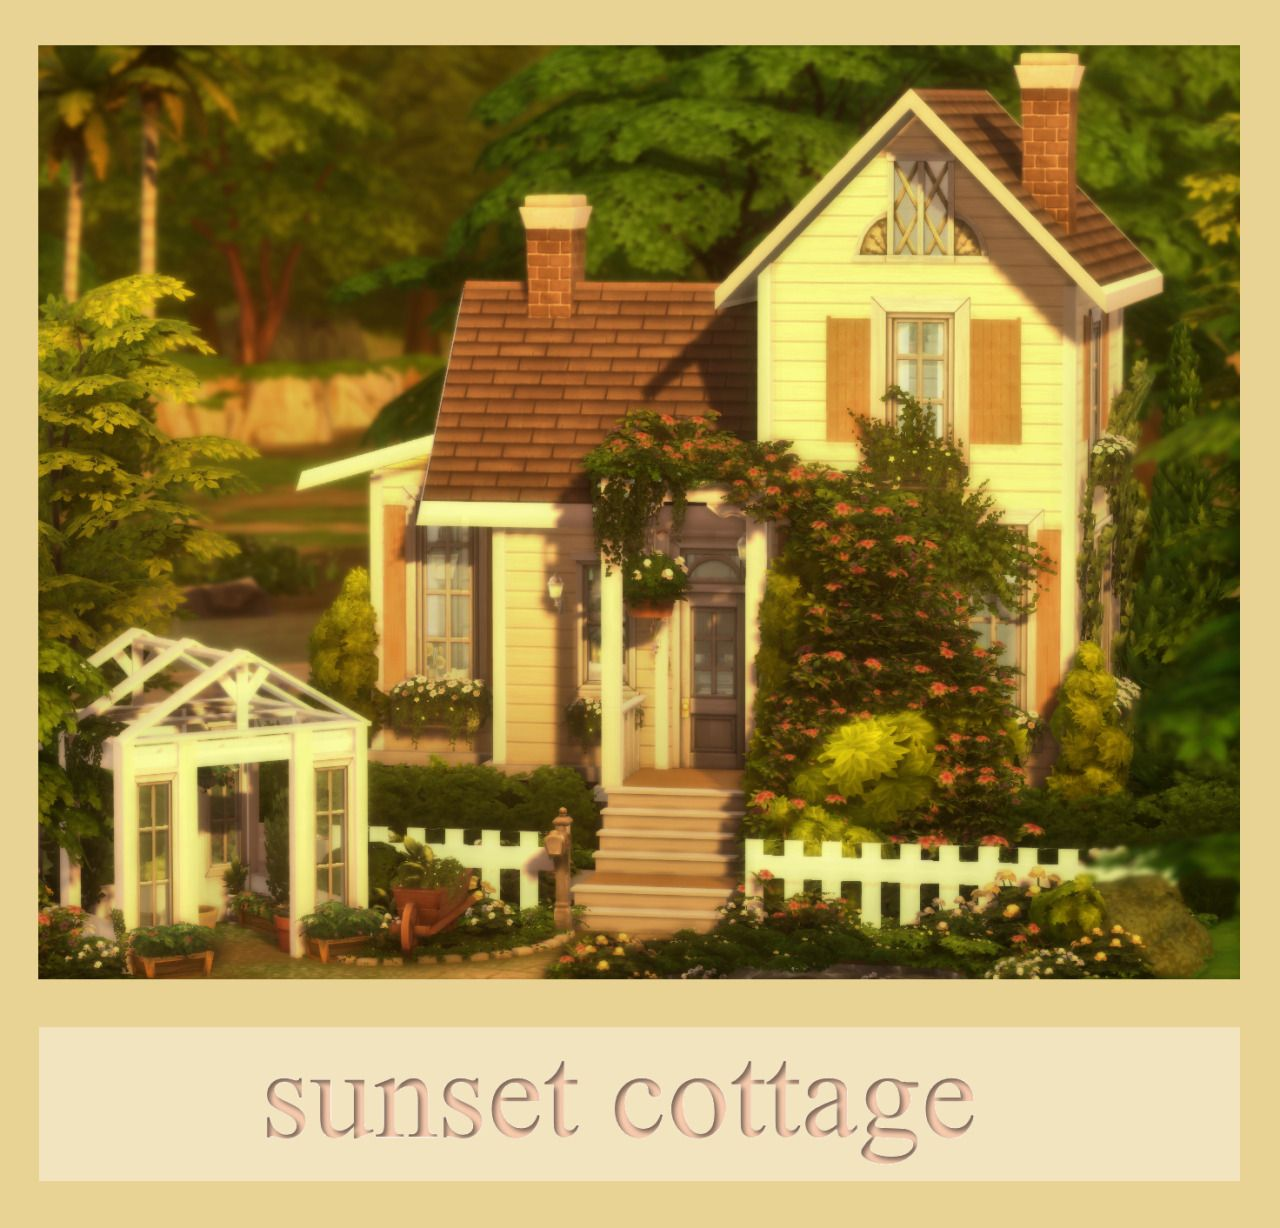 Sunset Cottage Sims House Sims House Plans Sims 4 House Design